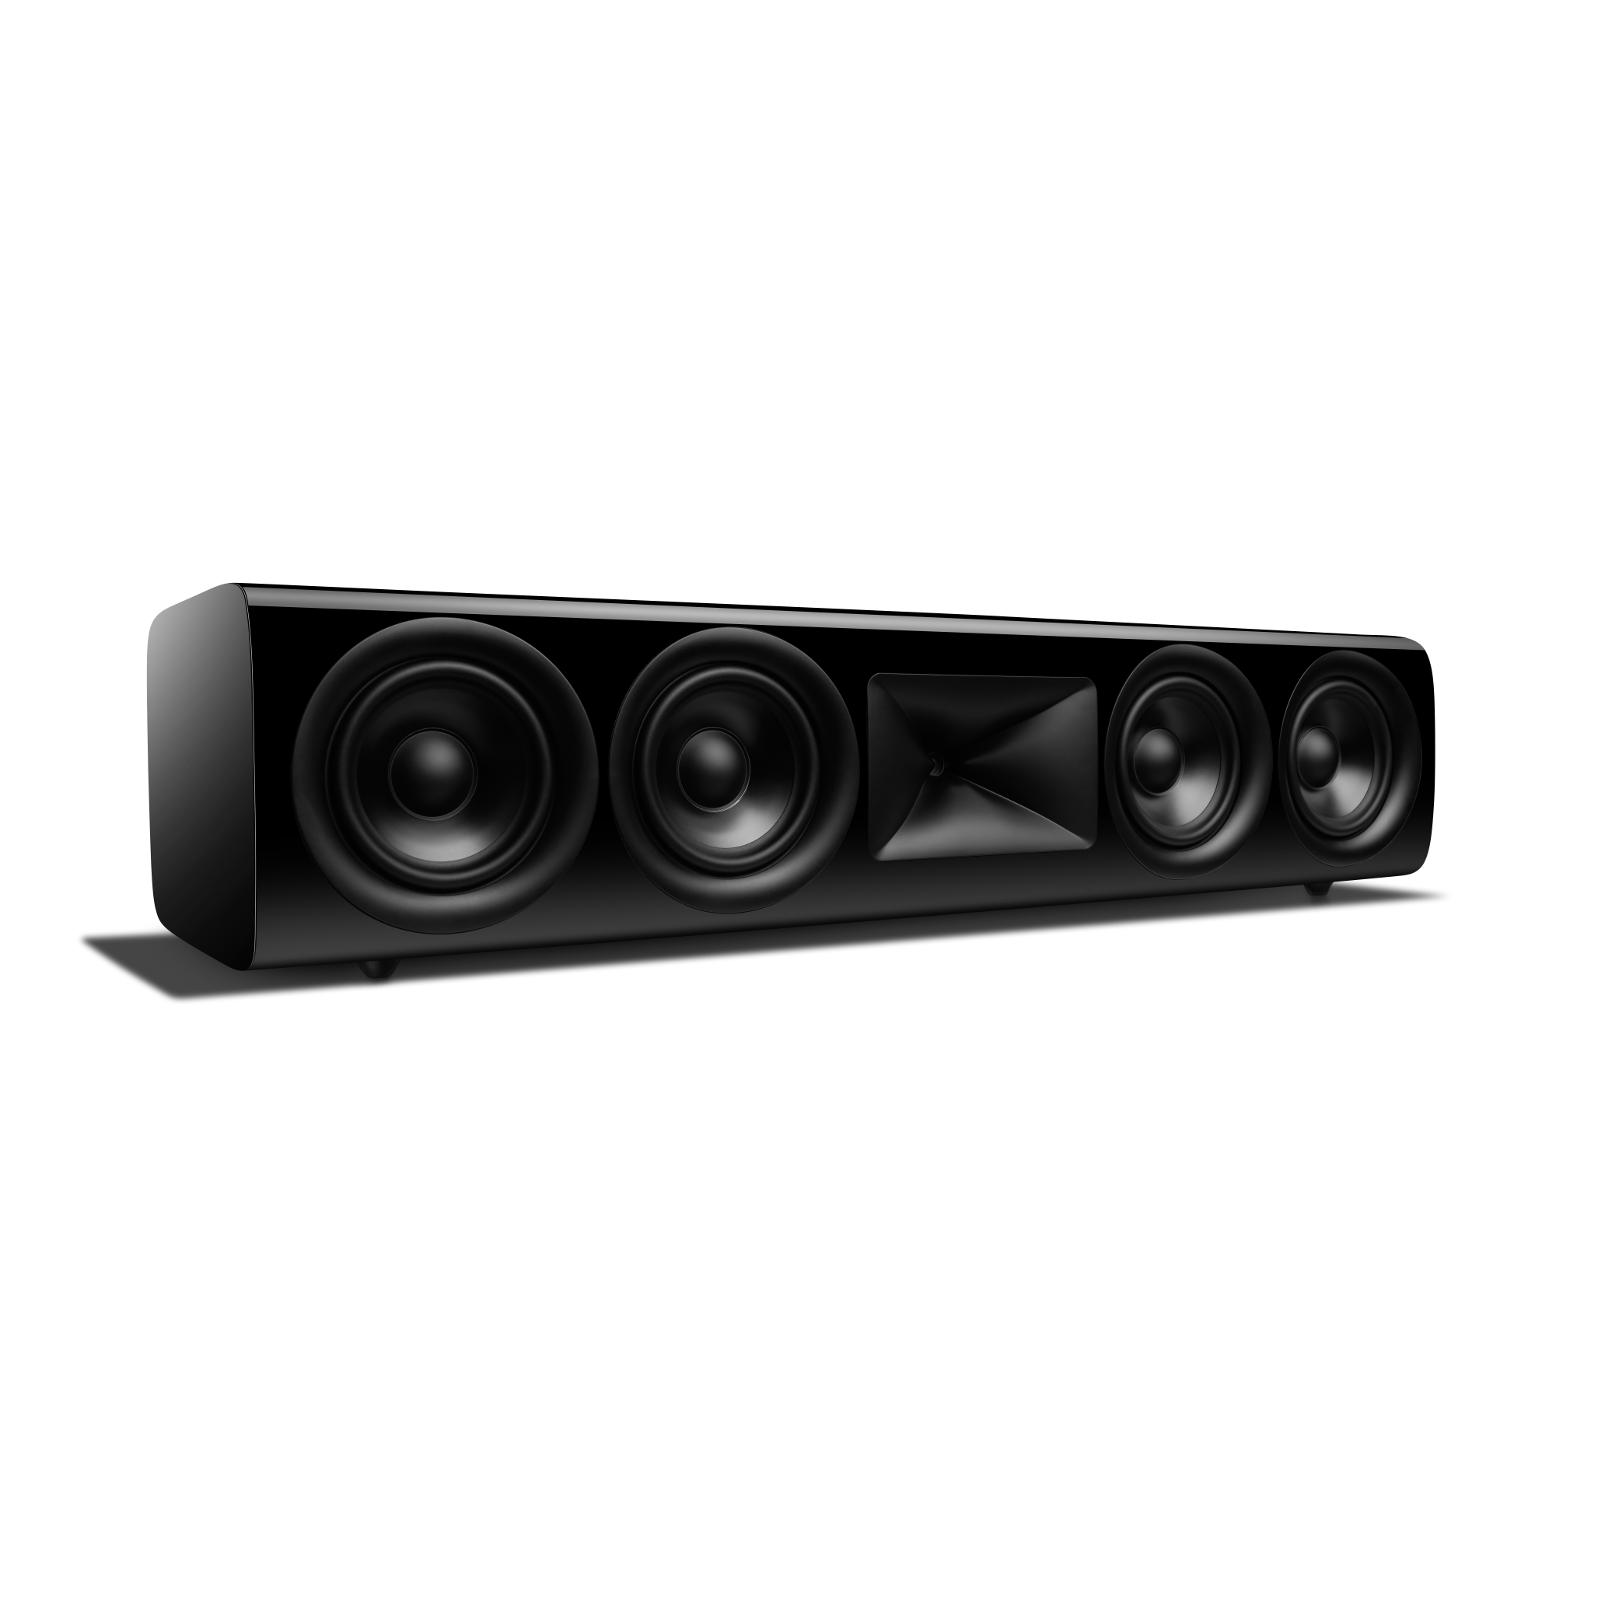 HDI-4500 - Black Gloss - 2 ½-way Quadruple 5.25-inch (130mm) Center Channel Loudspeaker - Left